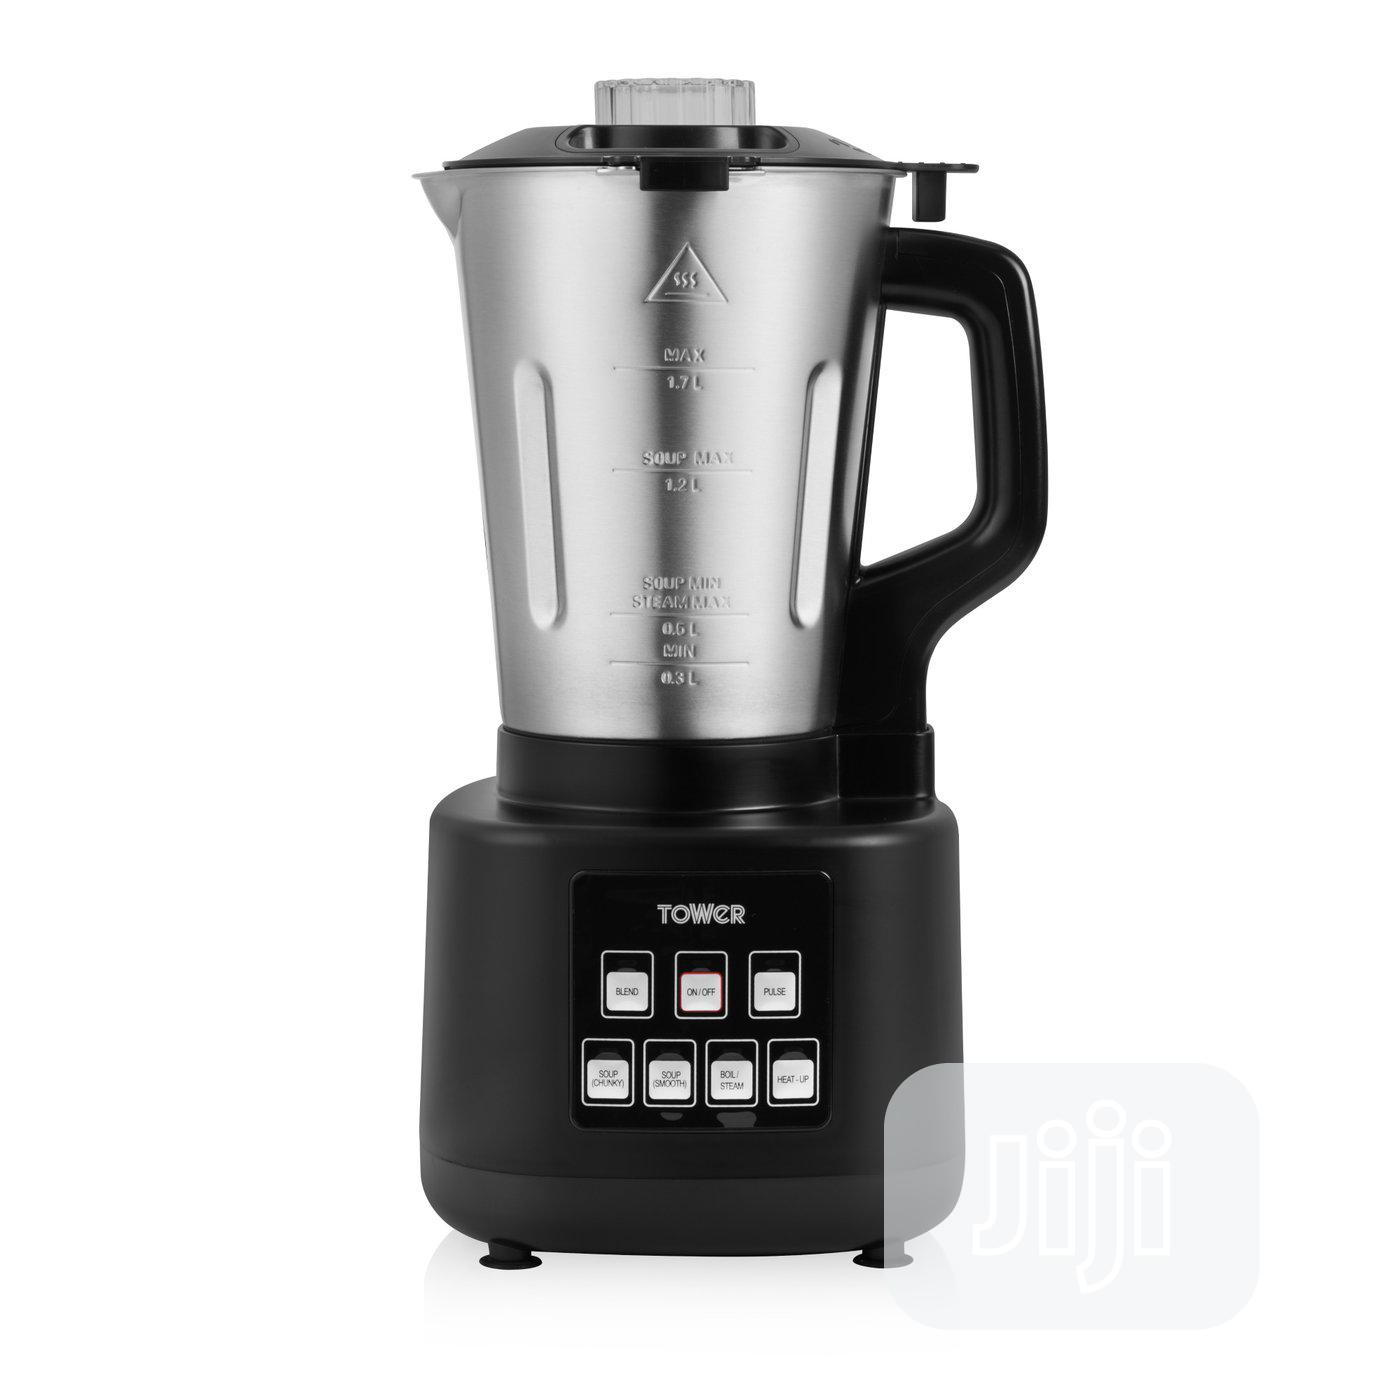 TOWER T12026 1.7L Stainless Steel Soup Maker 1200w | Kitchen Appliances for sale in Lekki, Lagos State, Nigeria